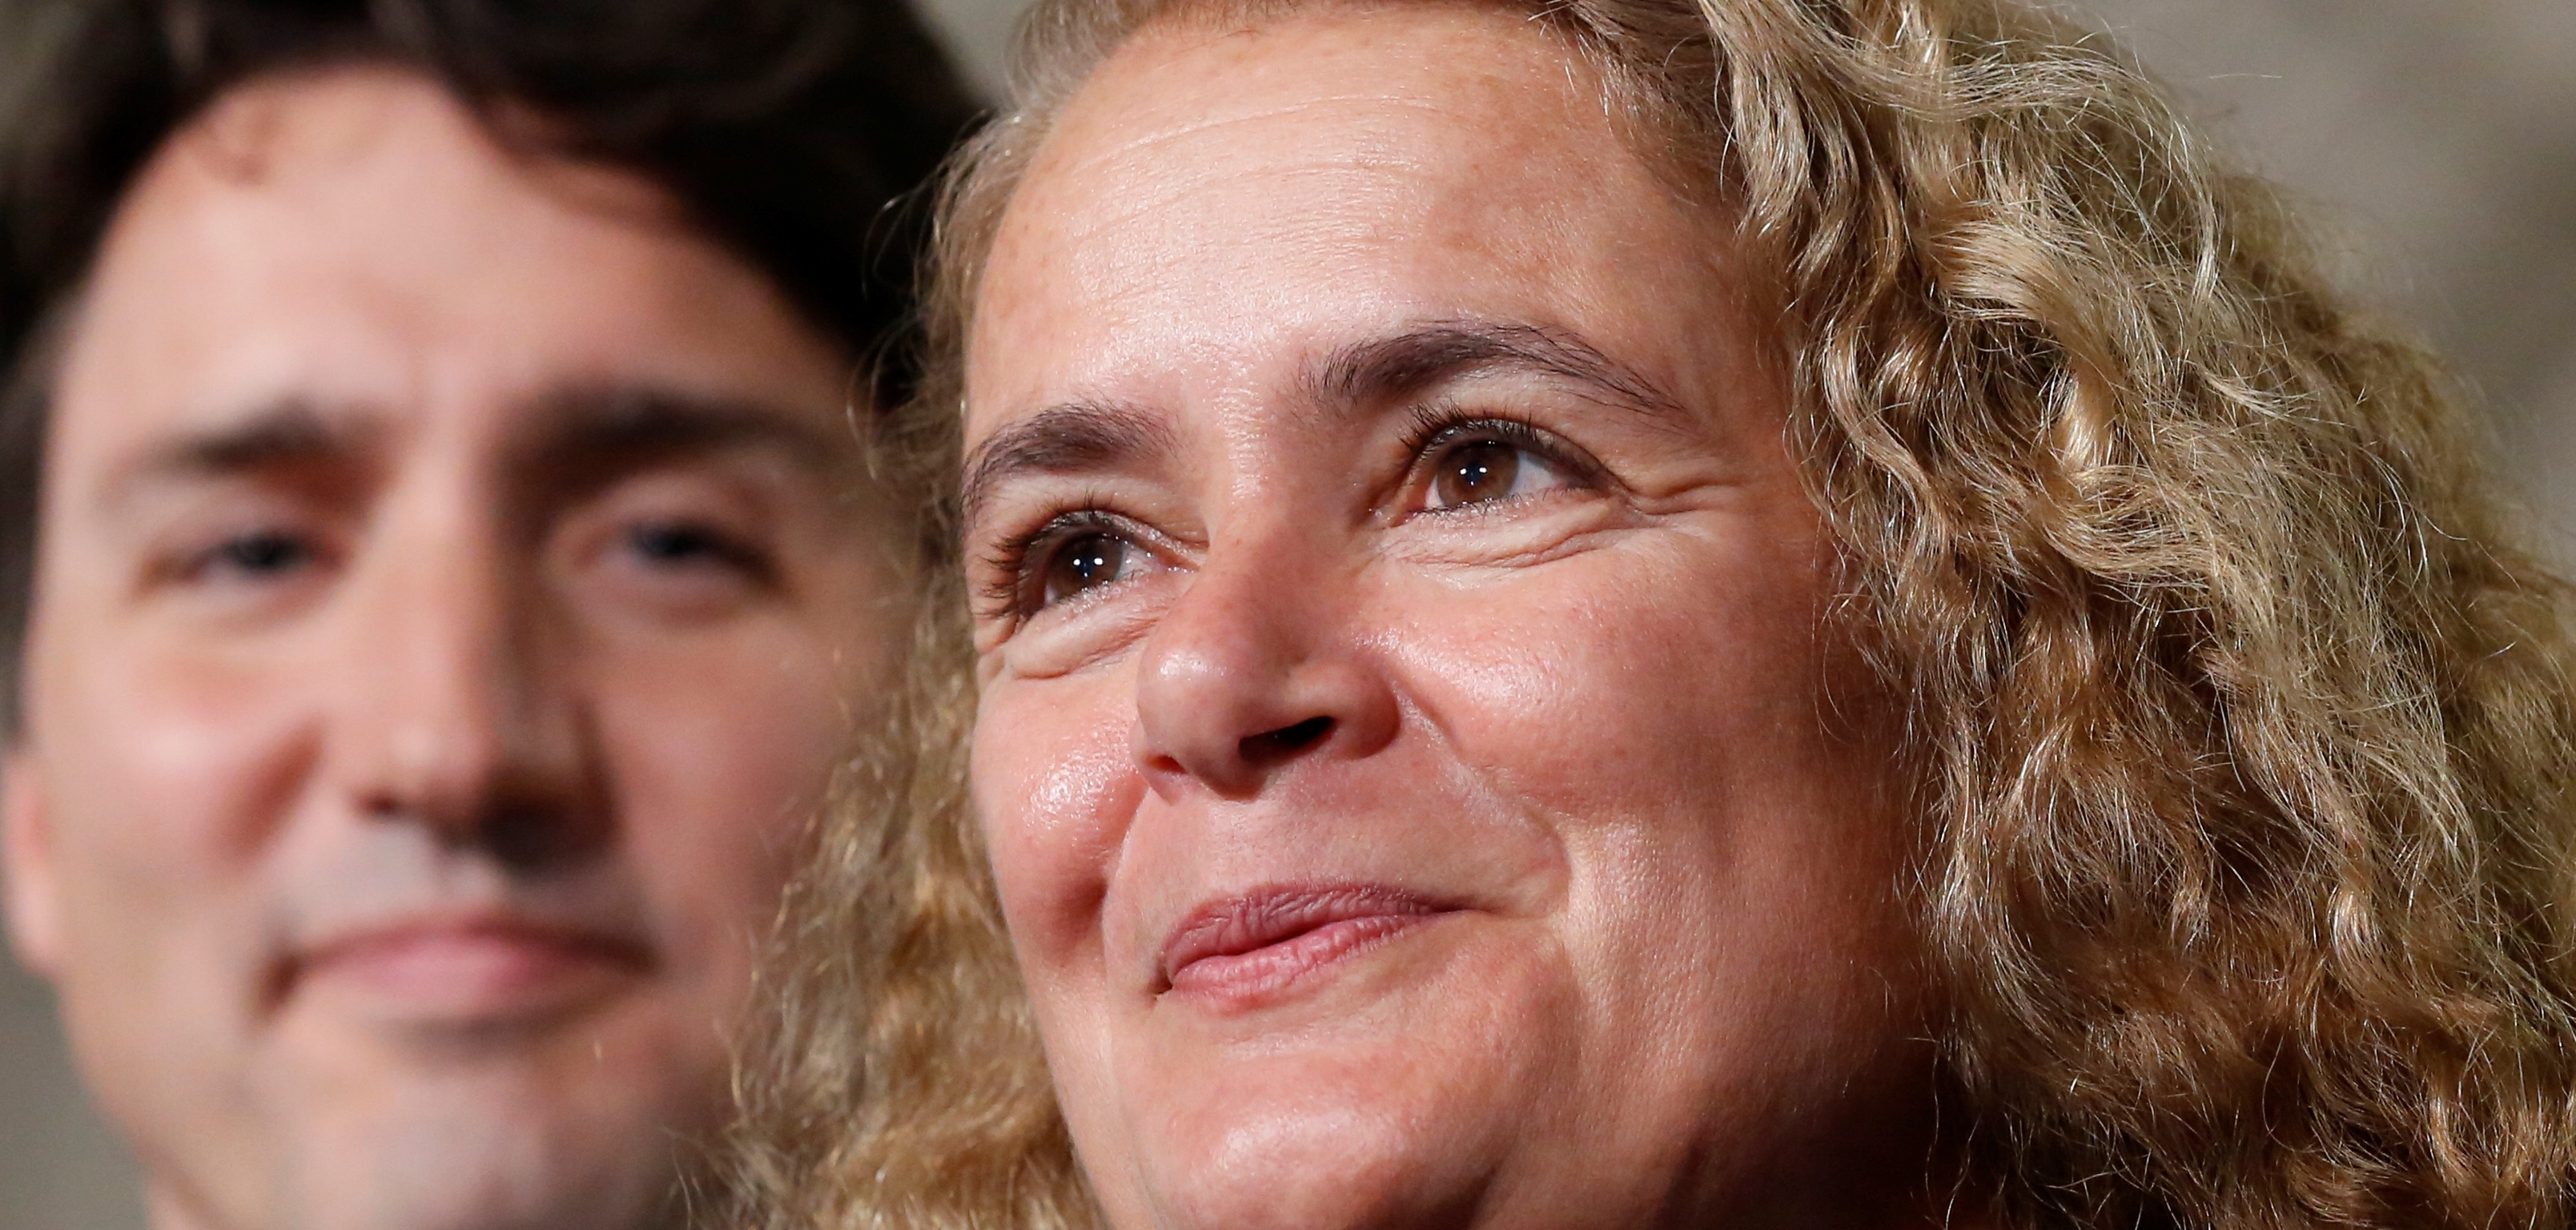 Former astronaut Julie Payette (R) and Canada's Prime Minister Justin Trudeau take part in a news conference announcing Payette's appointment as Canada's next governor general, in the Senate foyer on Parliament Hill in Ottawa, Ontario, Canada, July 13, 2017. REUTERS/Chris Wattie